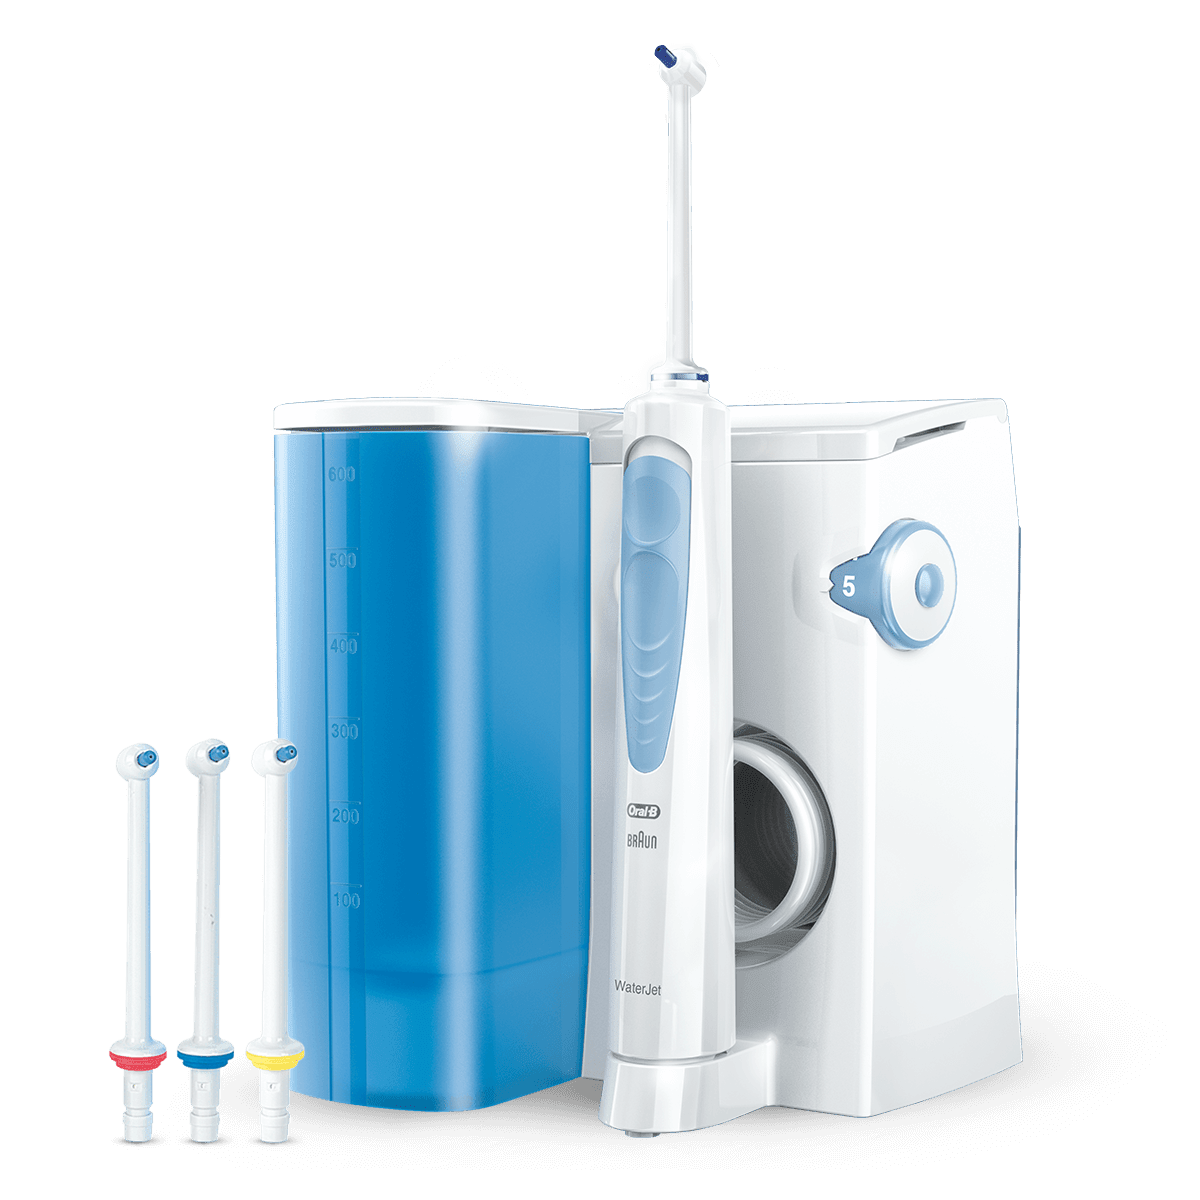 Oral-B PRO Care Waterjet Munddusche